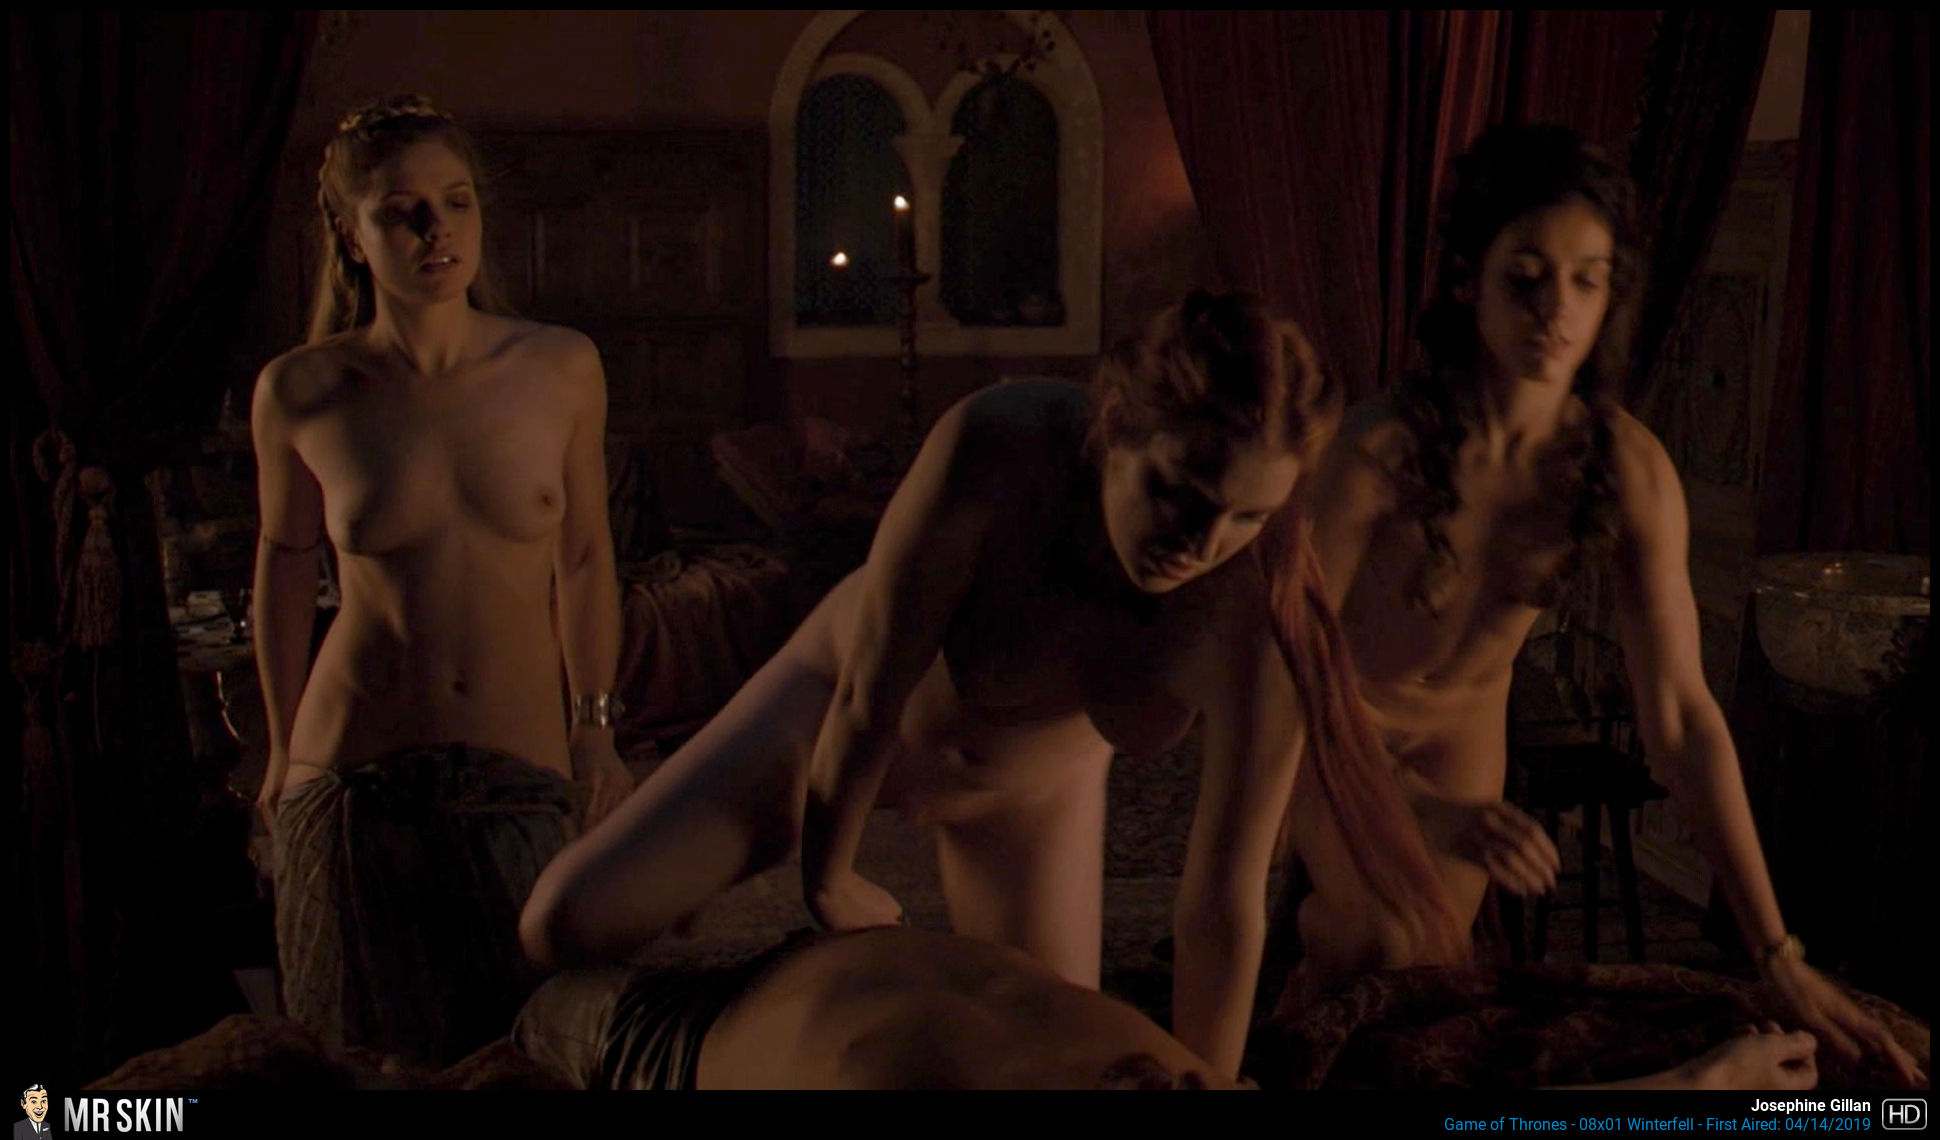 The vally girls nude